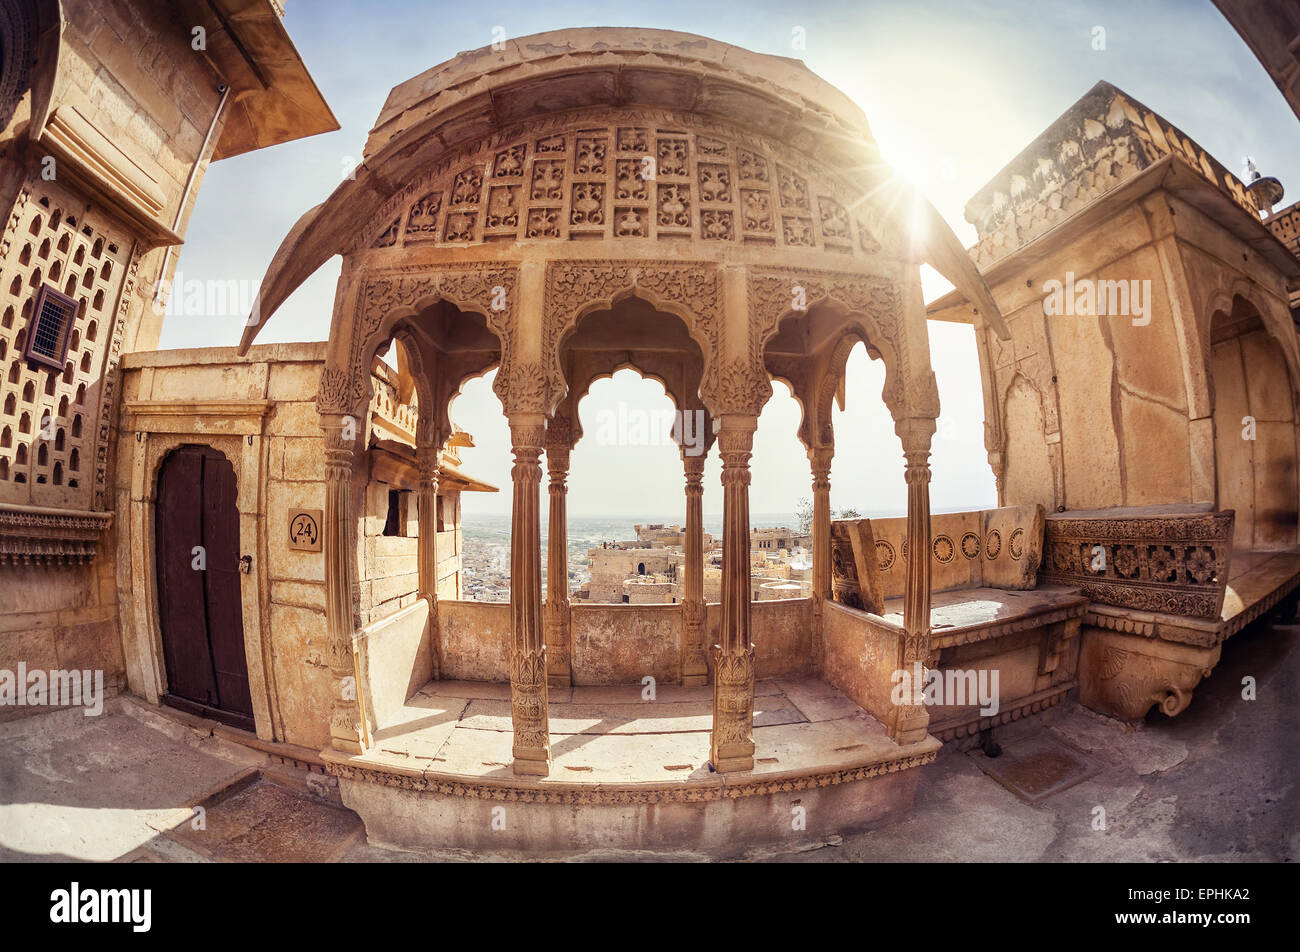 Zenana Mahal in City Palace Museum di Jaisalmer fort, Rajasthan, India Immagini Stock